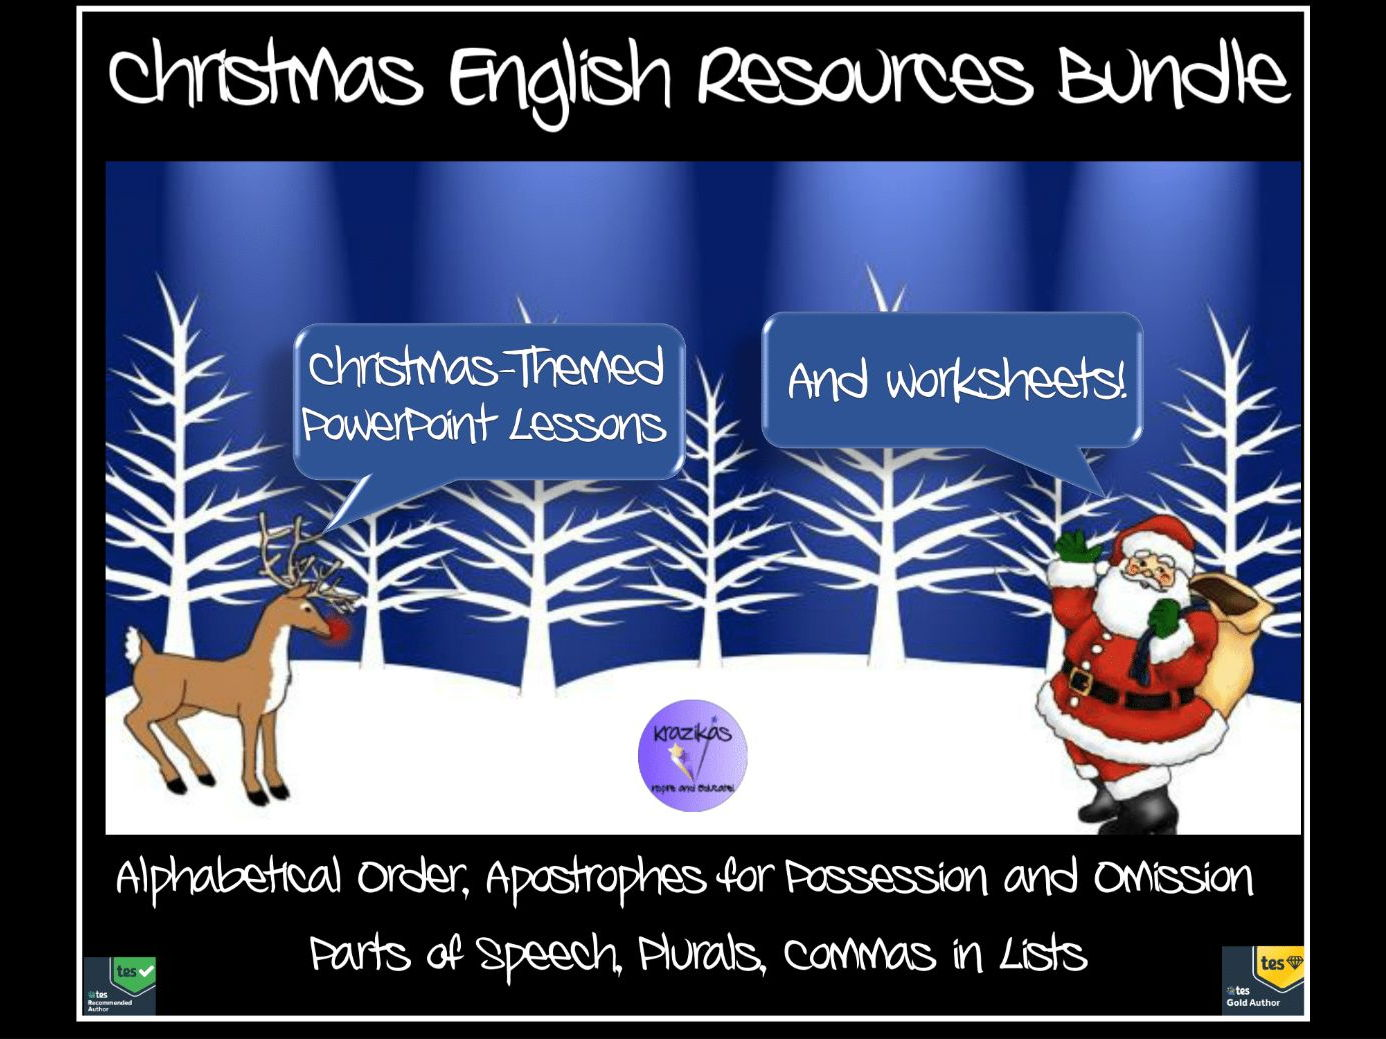 Christmas-Themed English Resources Bundle - PowerPoint Lessons and Worksheets